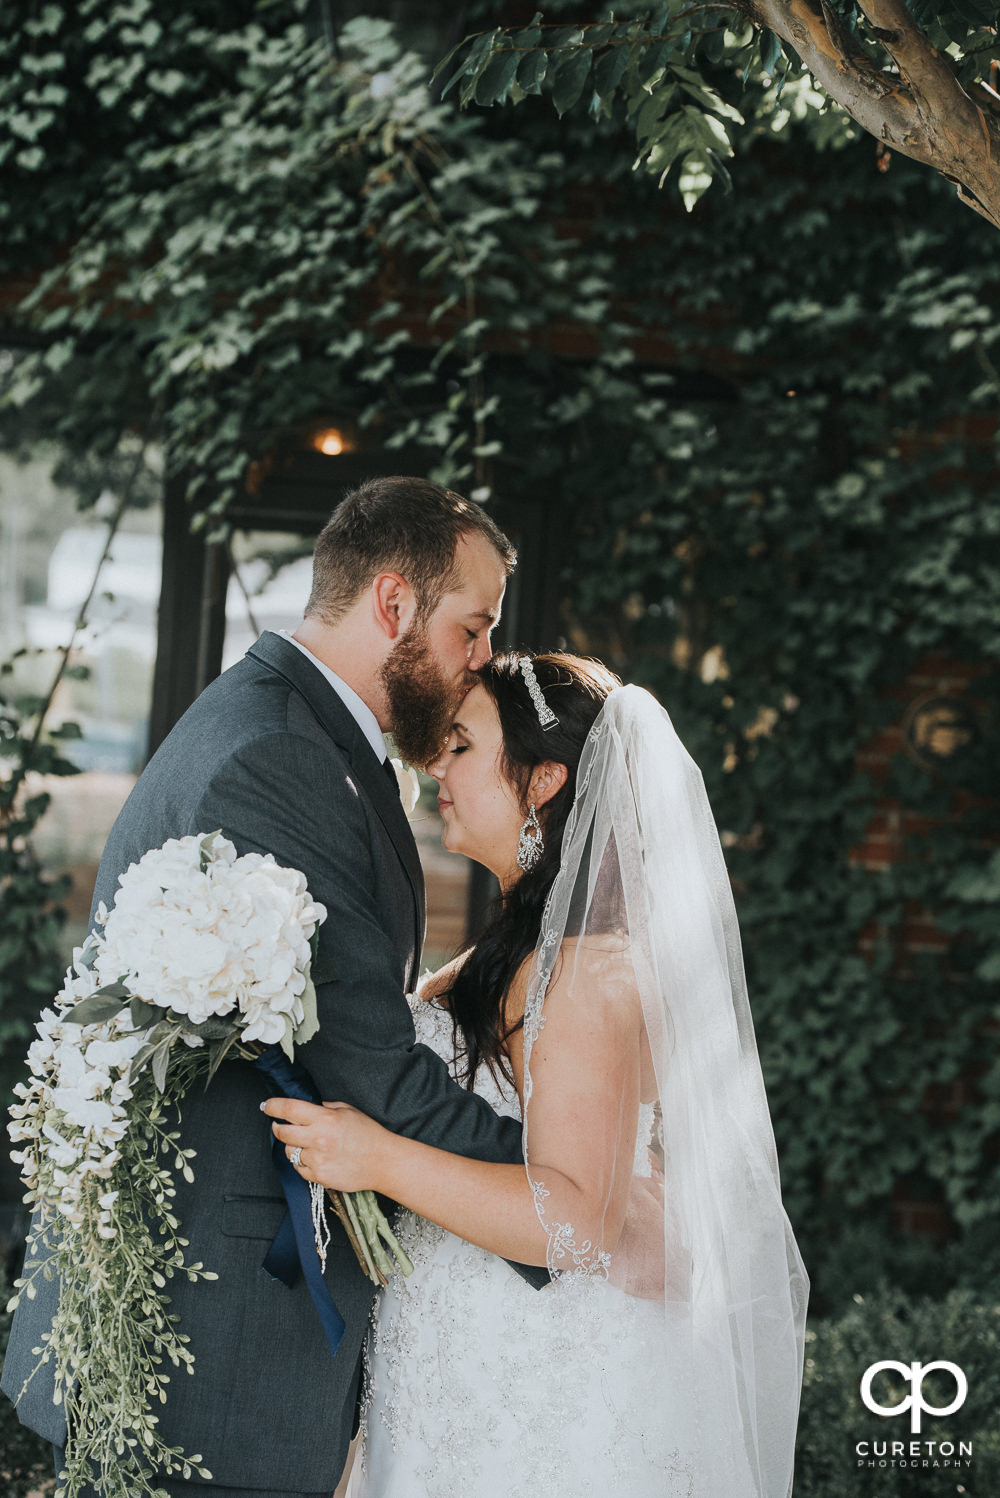 Groom kissing his bride on the forehead in front of a wall of ivy at The Loom after their wedding.